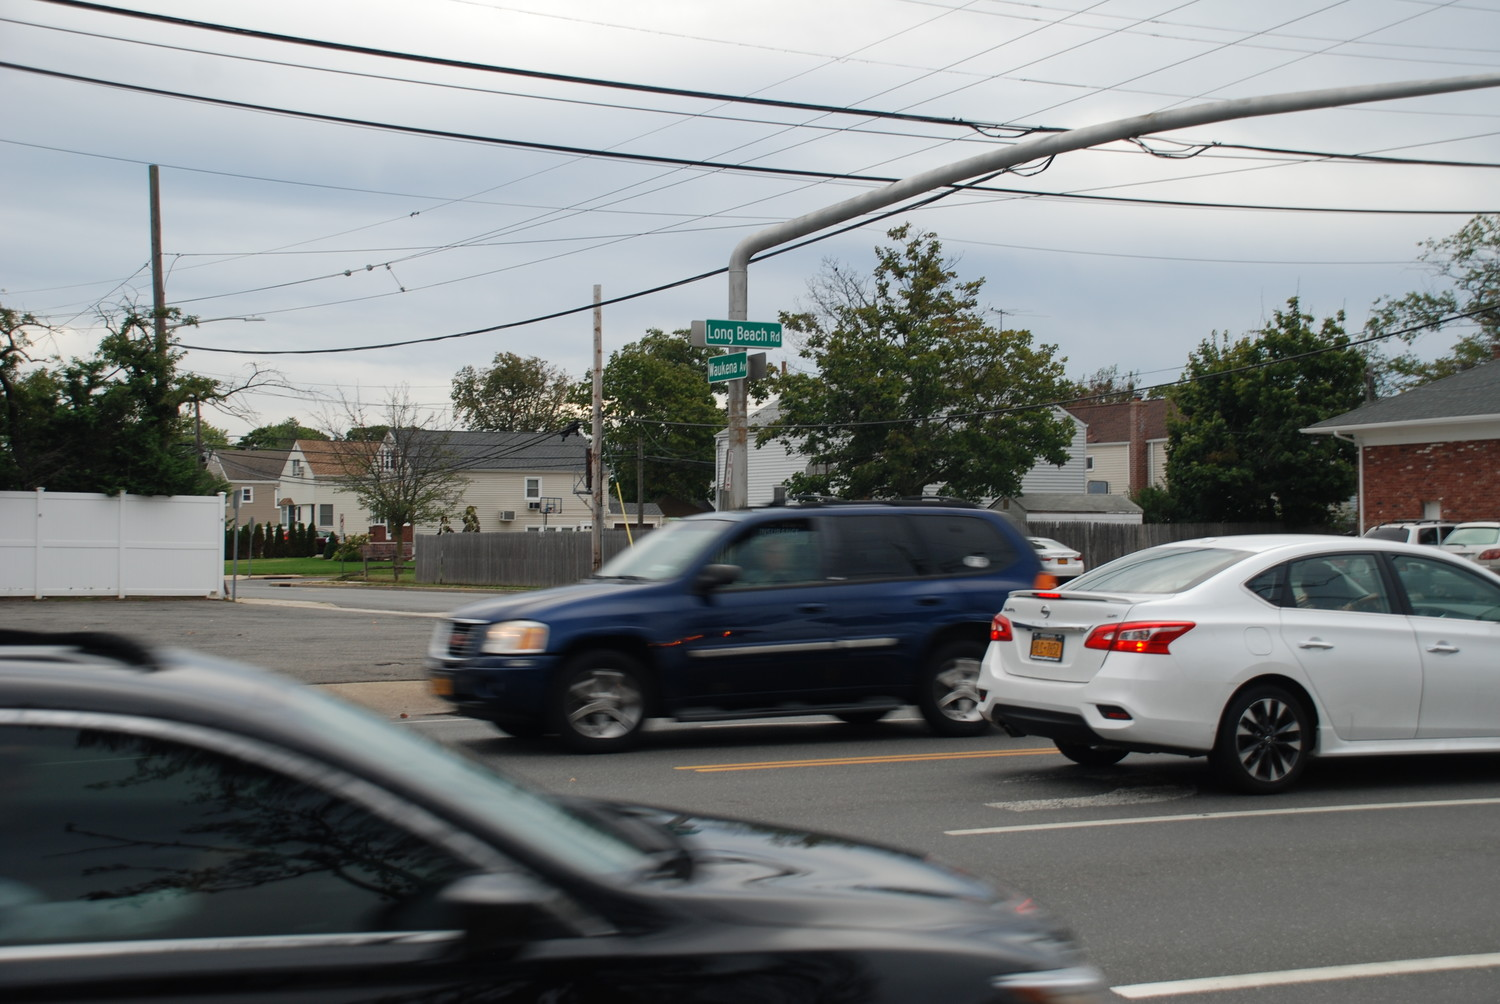 Cars rushed through a busy intersection near Long Beach Road and Henrietta Avenue. The intersection, which was assigned a crossing guard earlier this month, has been the subject of recent discussions about pedestrian safety.